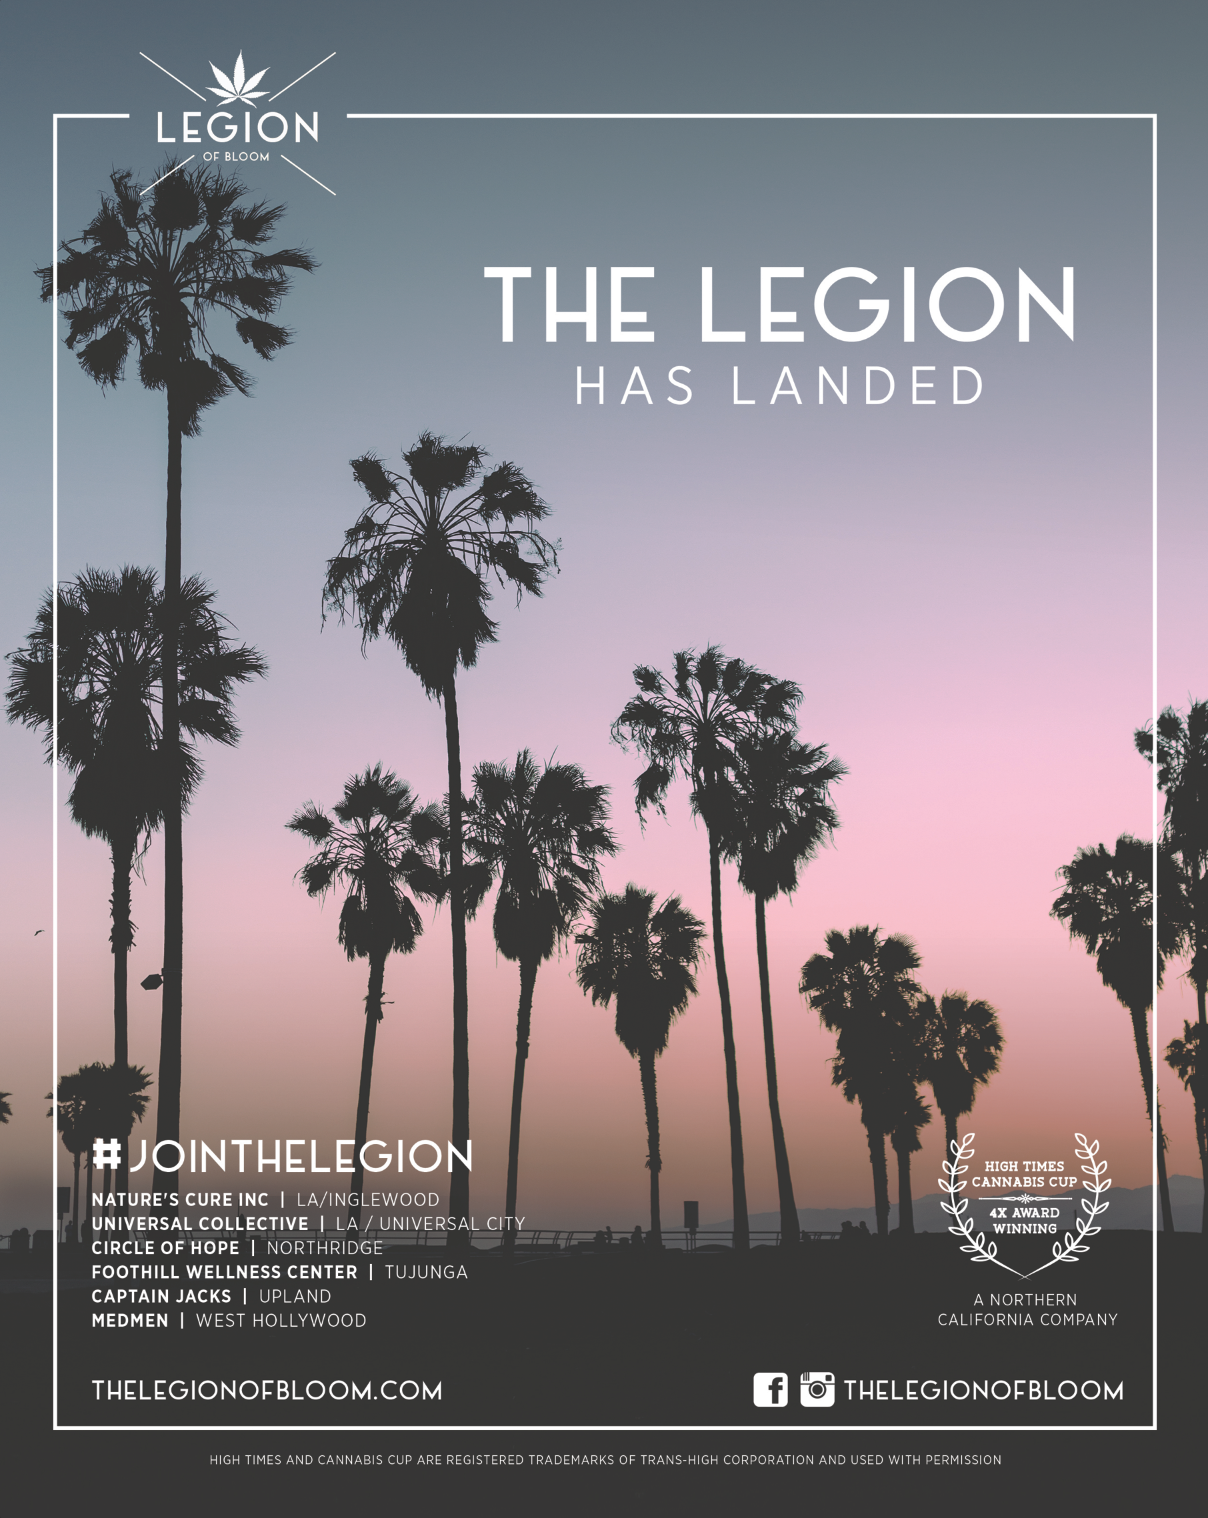 The Legion of Bloom has landed in SoCal